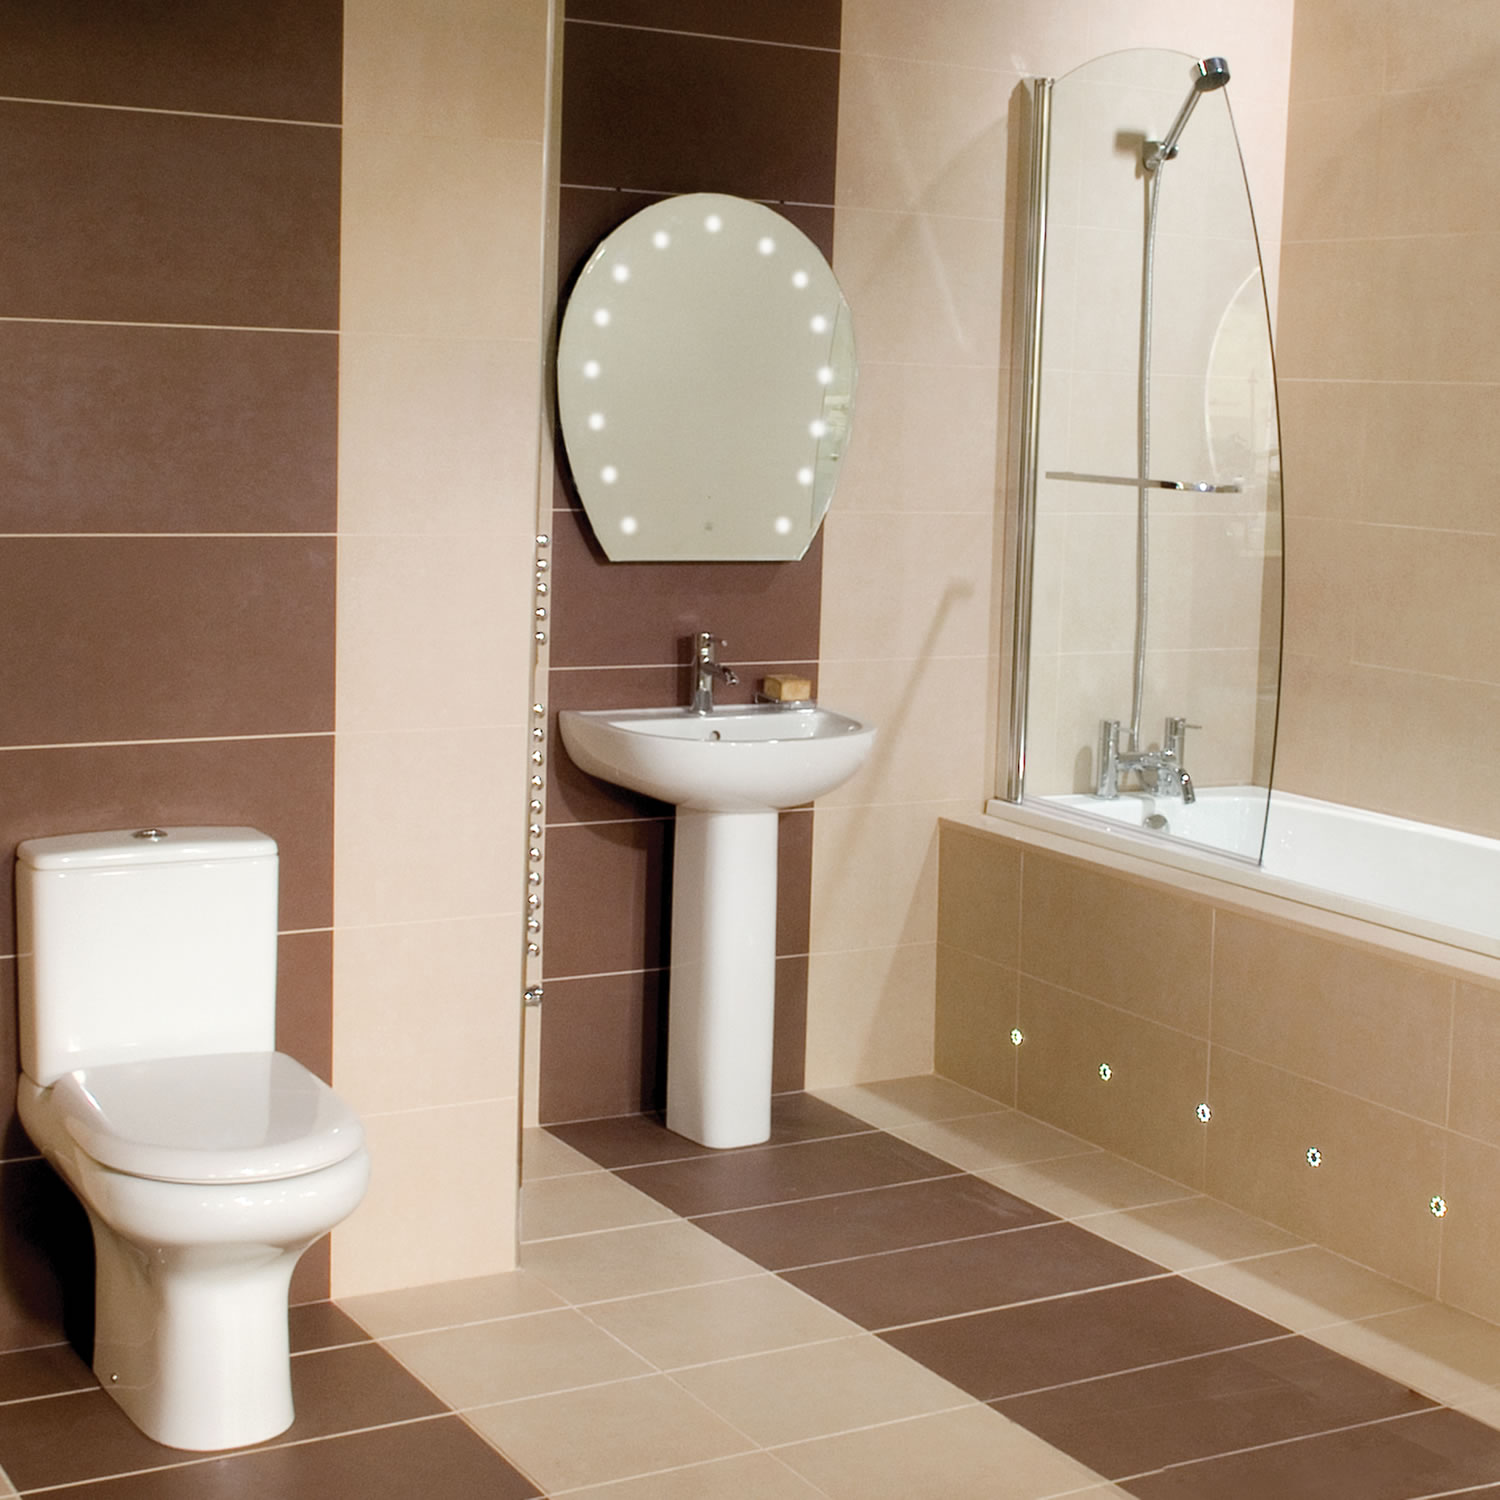 Small bathroom ideas qnud for Mini bathroom ideas